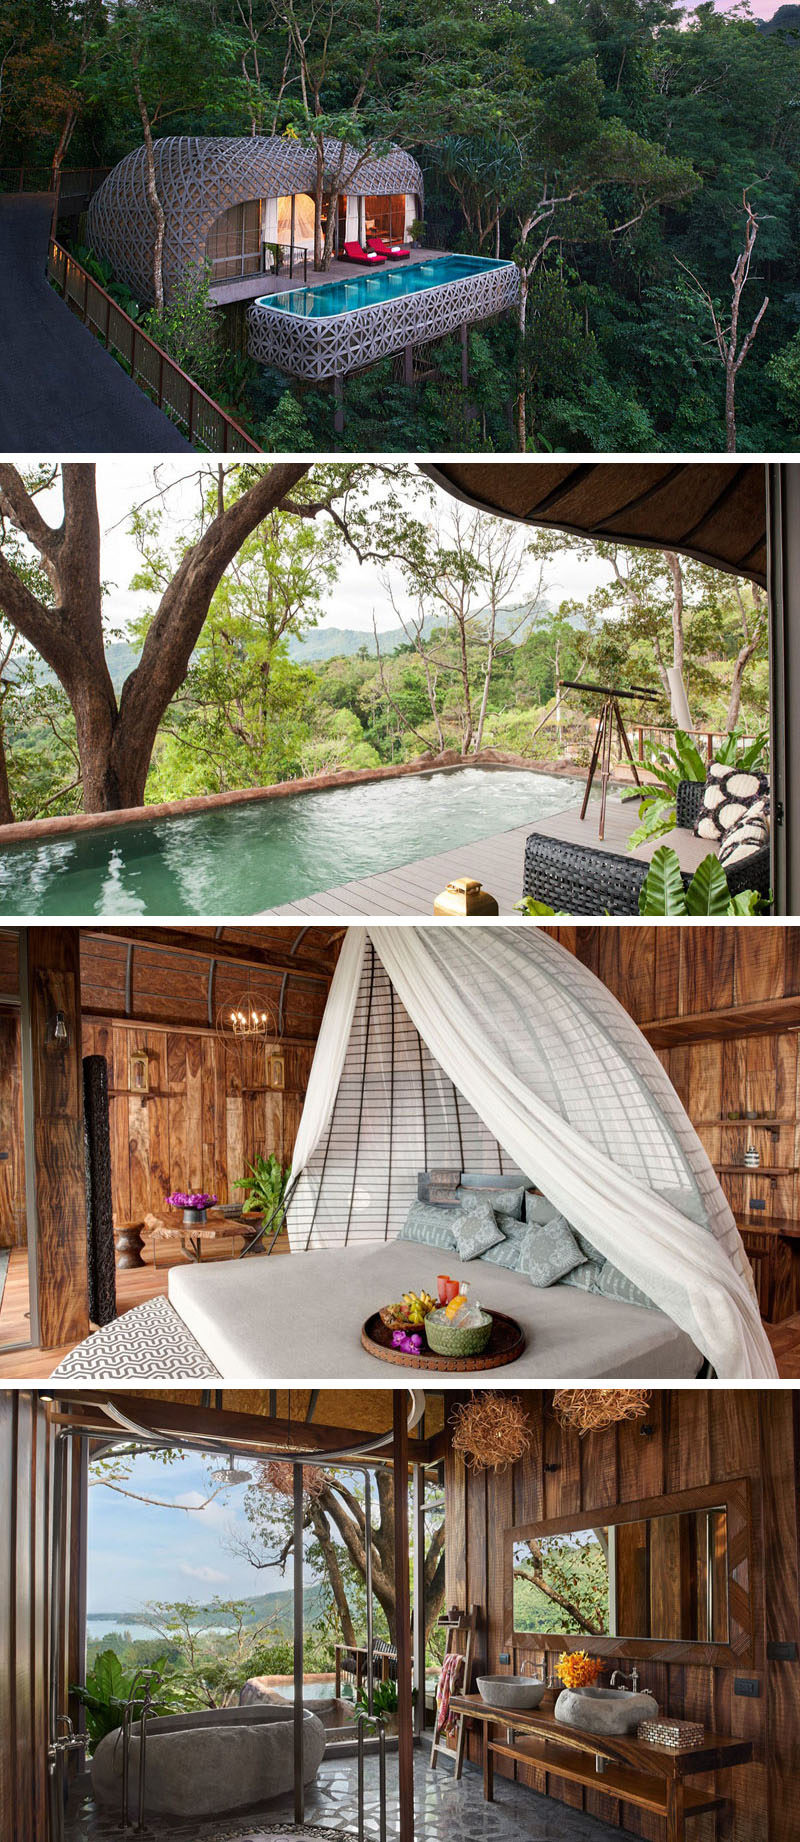 Travel Idea - At the Keemala resort in Thailand and situated up in the trees, criss-crossing strips cover the outside of this villa to create an exterior that resembles a birds nest.